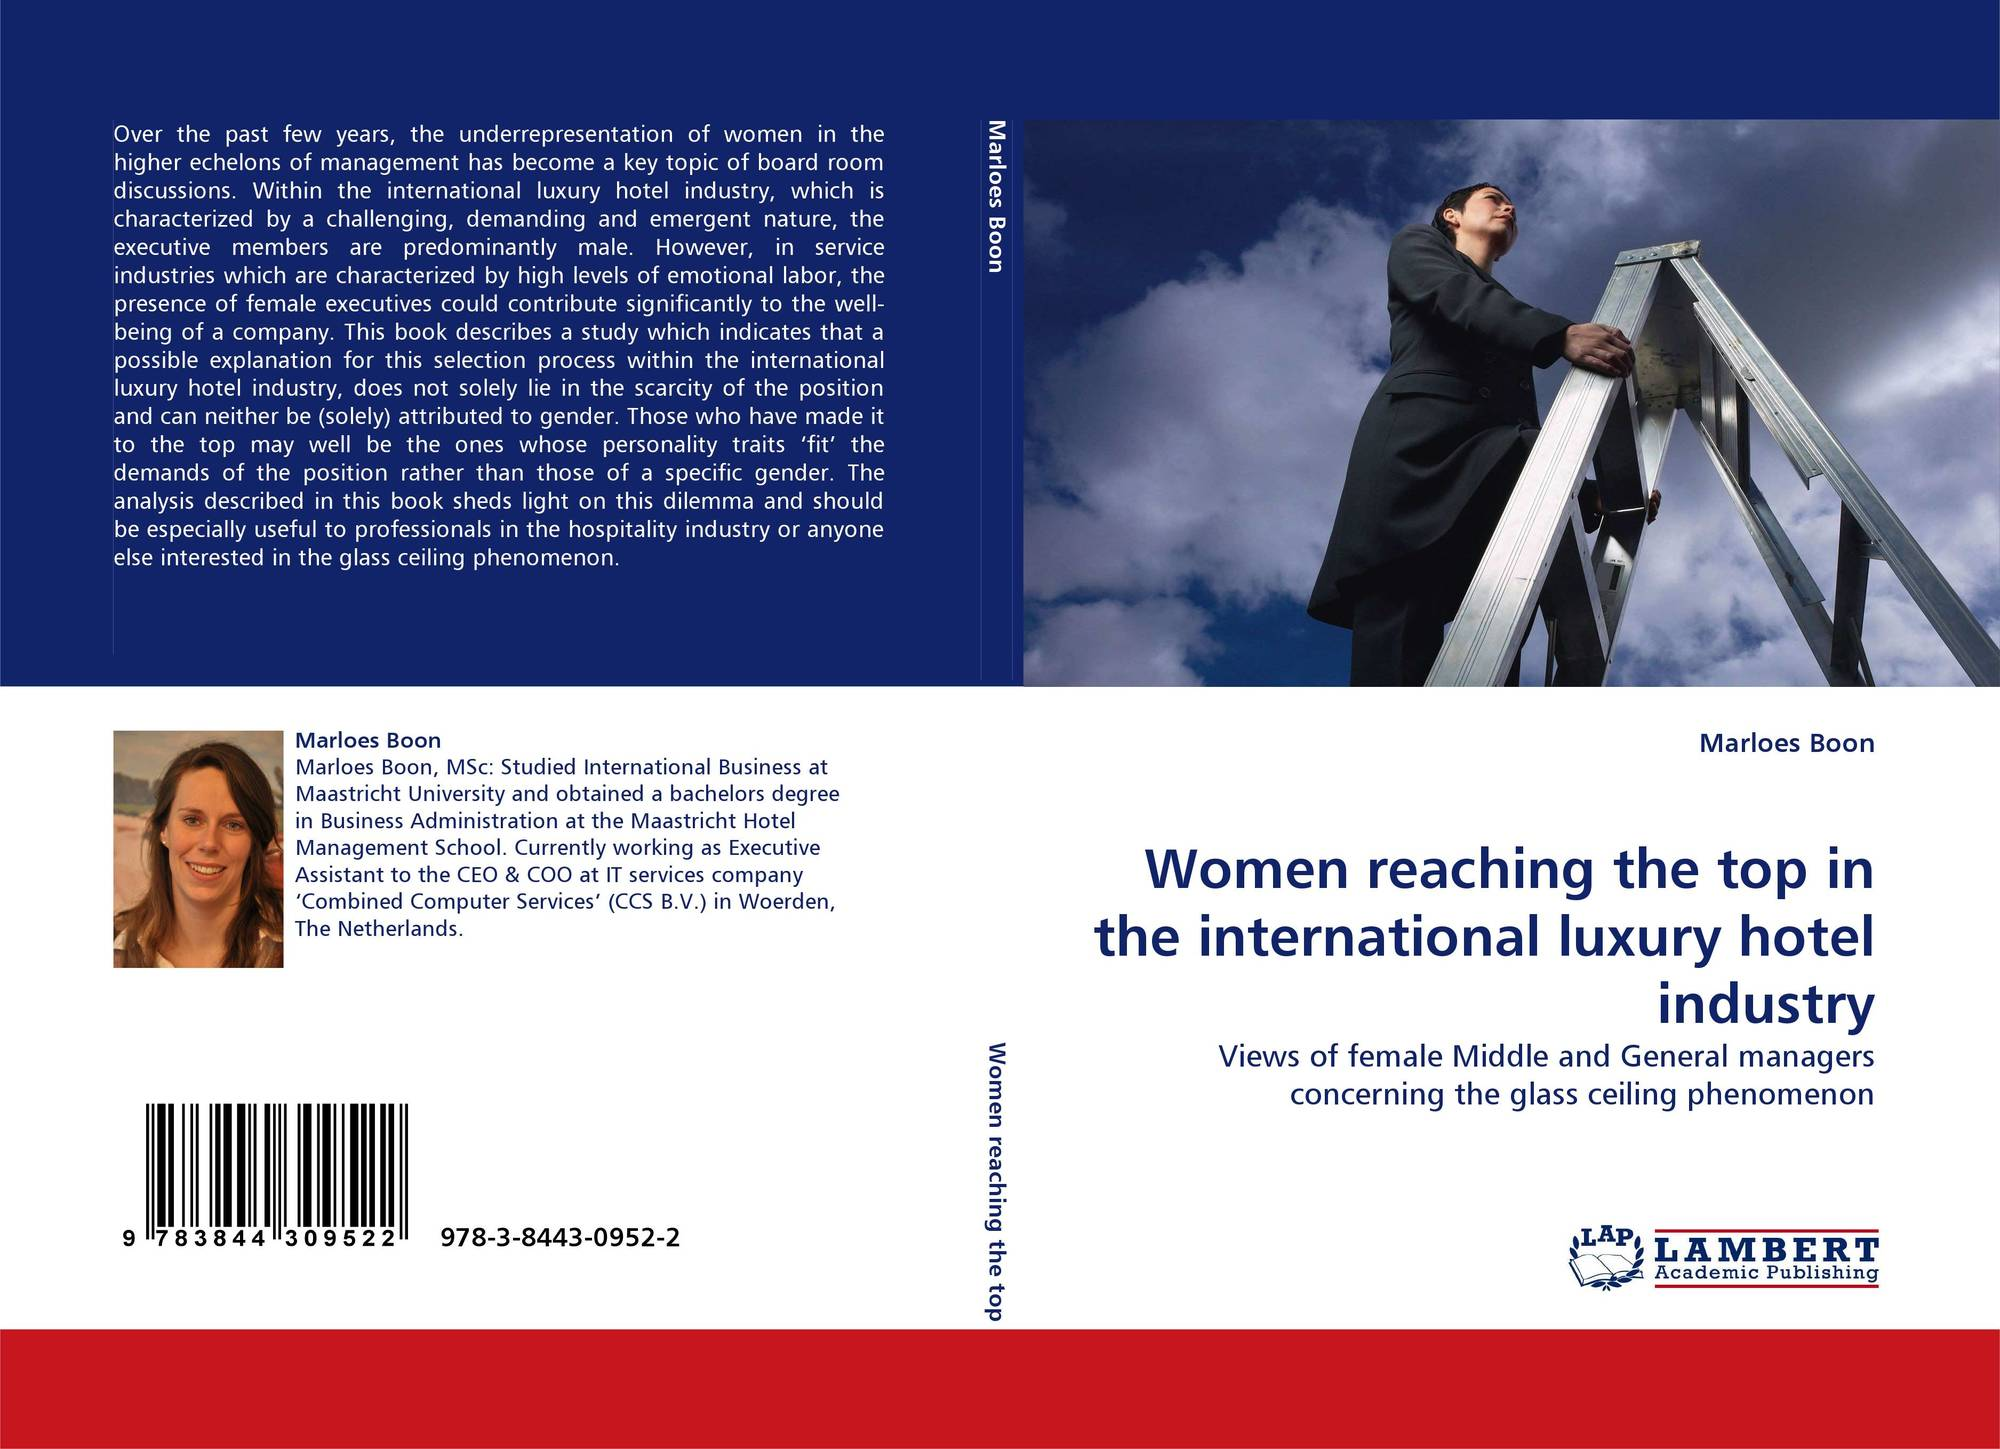 social psychology the glass ceiling phenomenon Nothing changes, really: why women who break through the glass ceiling end up reinforcing it klea  advances in experimental social psychology, 52,.